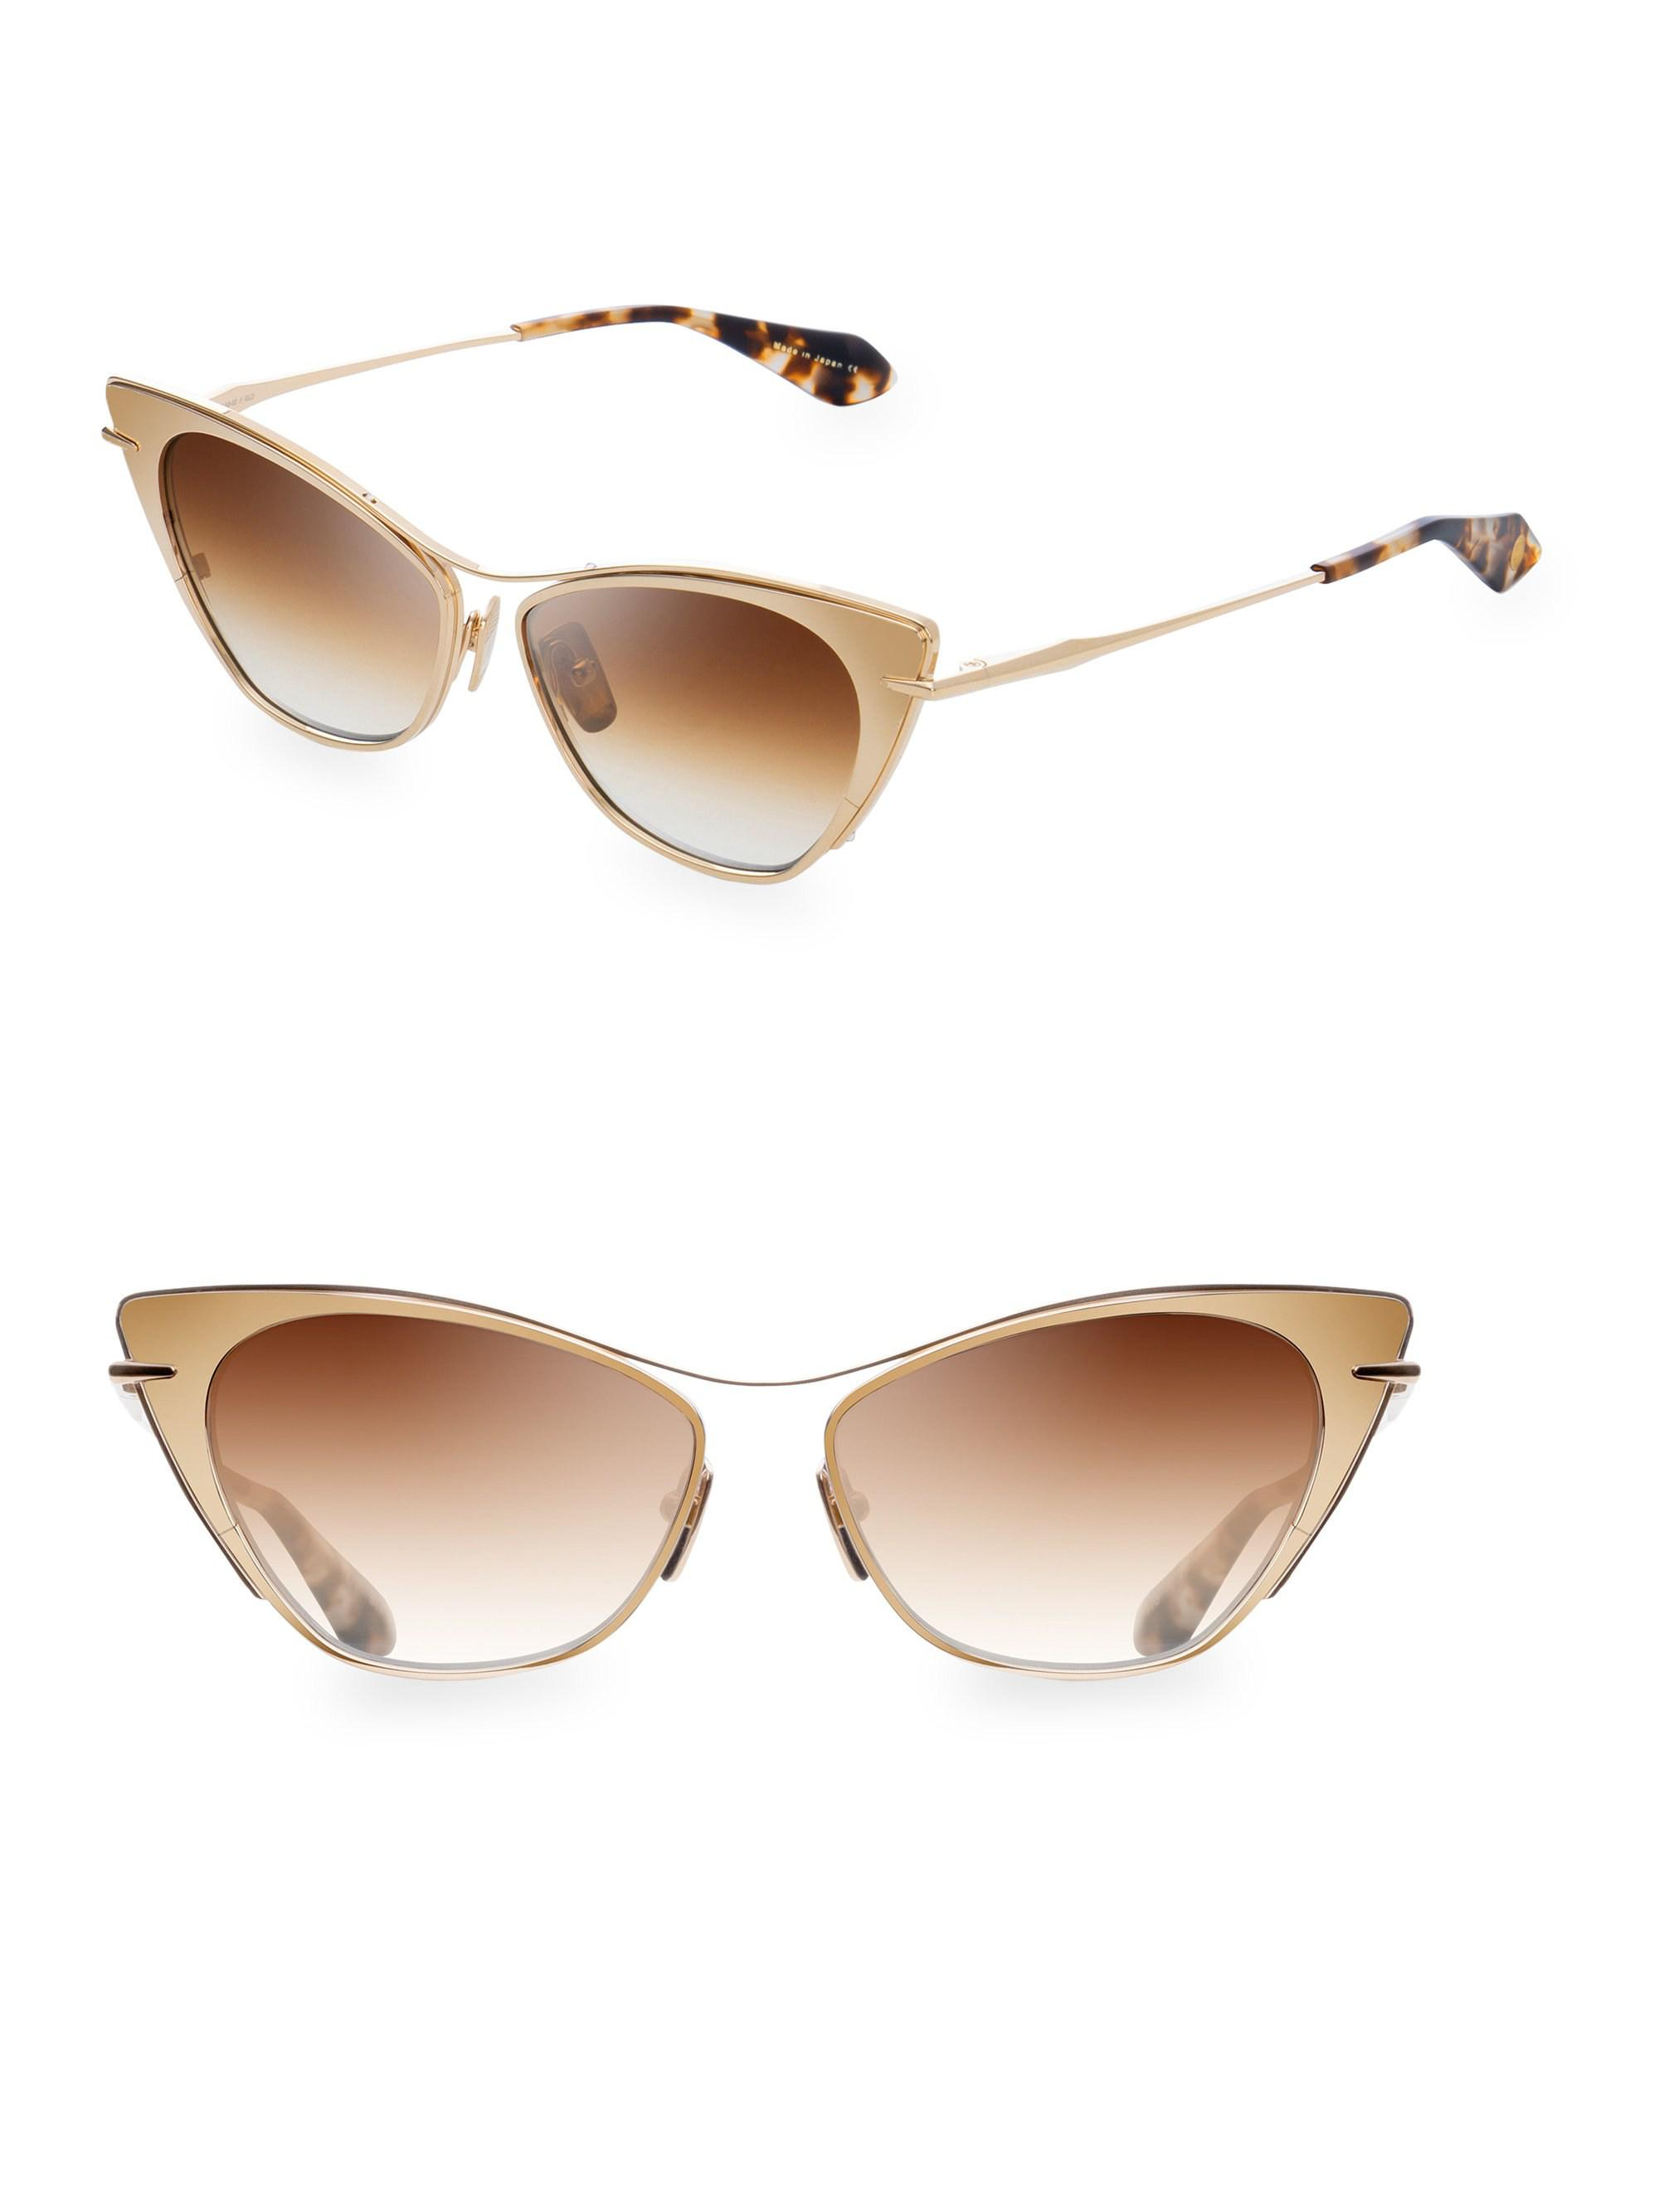 e98ffea3364 Dita Eyewear 56mm Cat Eye Sunglasses in Metallic - Lyst